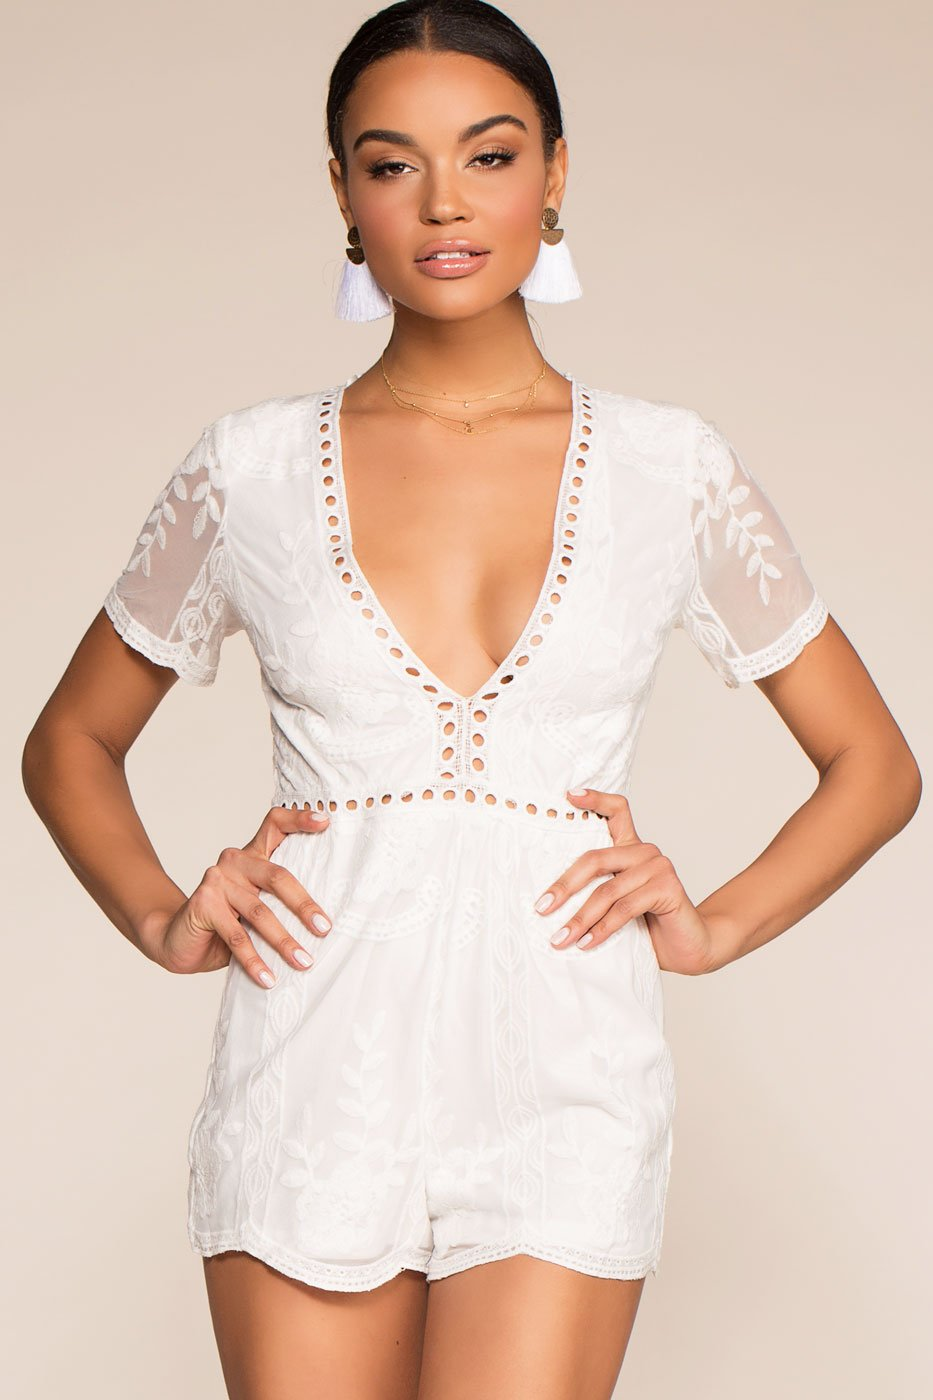 00cb4585d21 ... Rompers - Tea And Biscuit Lace Romper - White ...